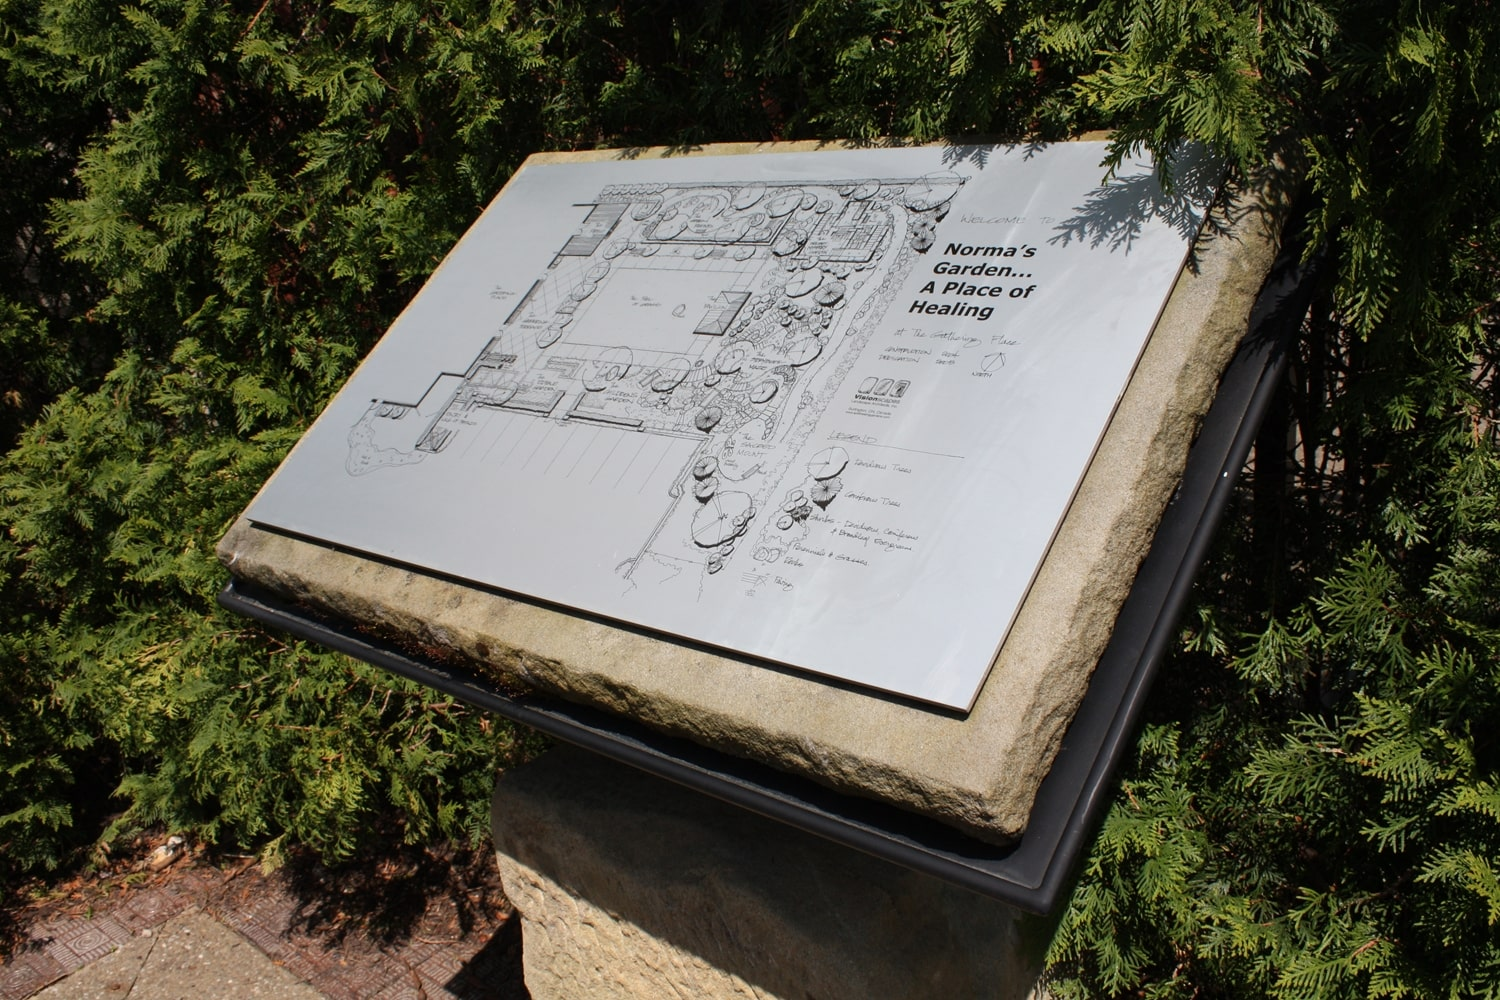 Aluma-Tough Outdoor Metal Signage Lasts for 20+ Years